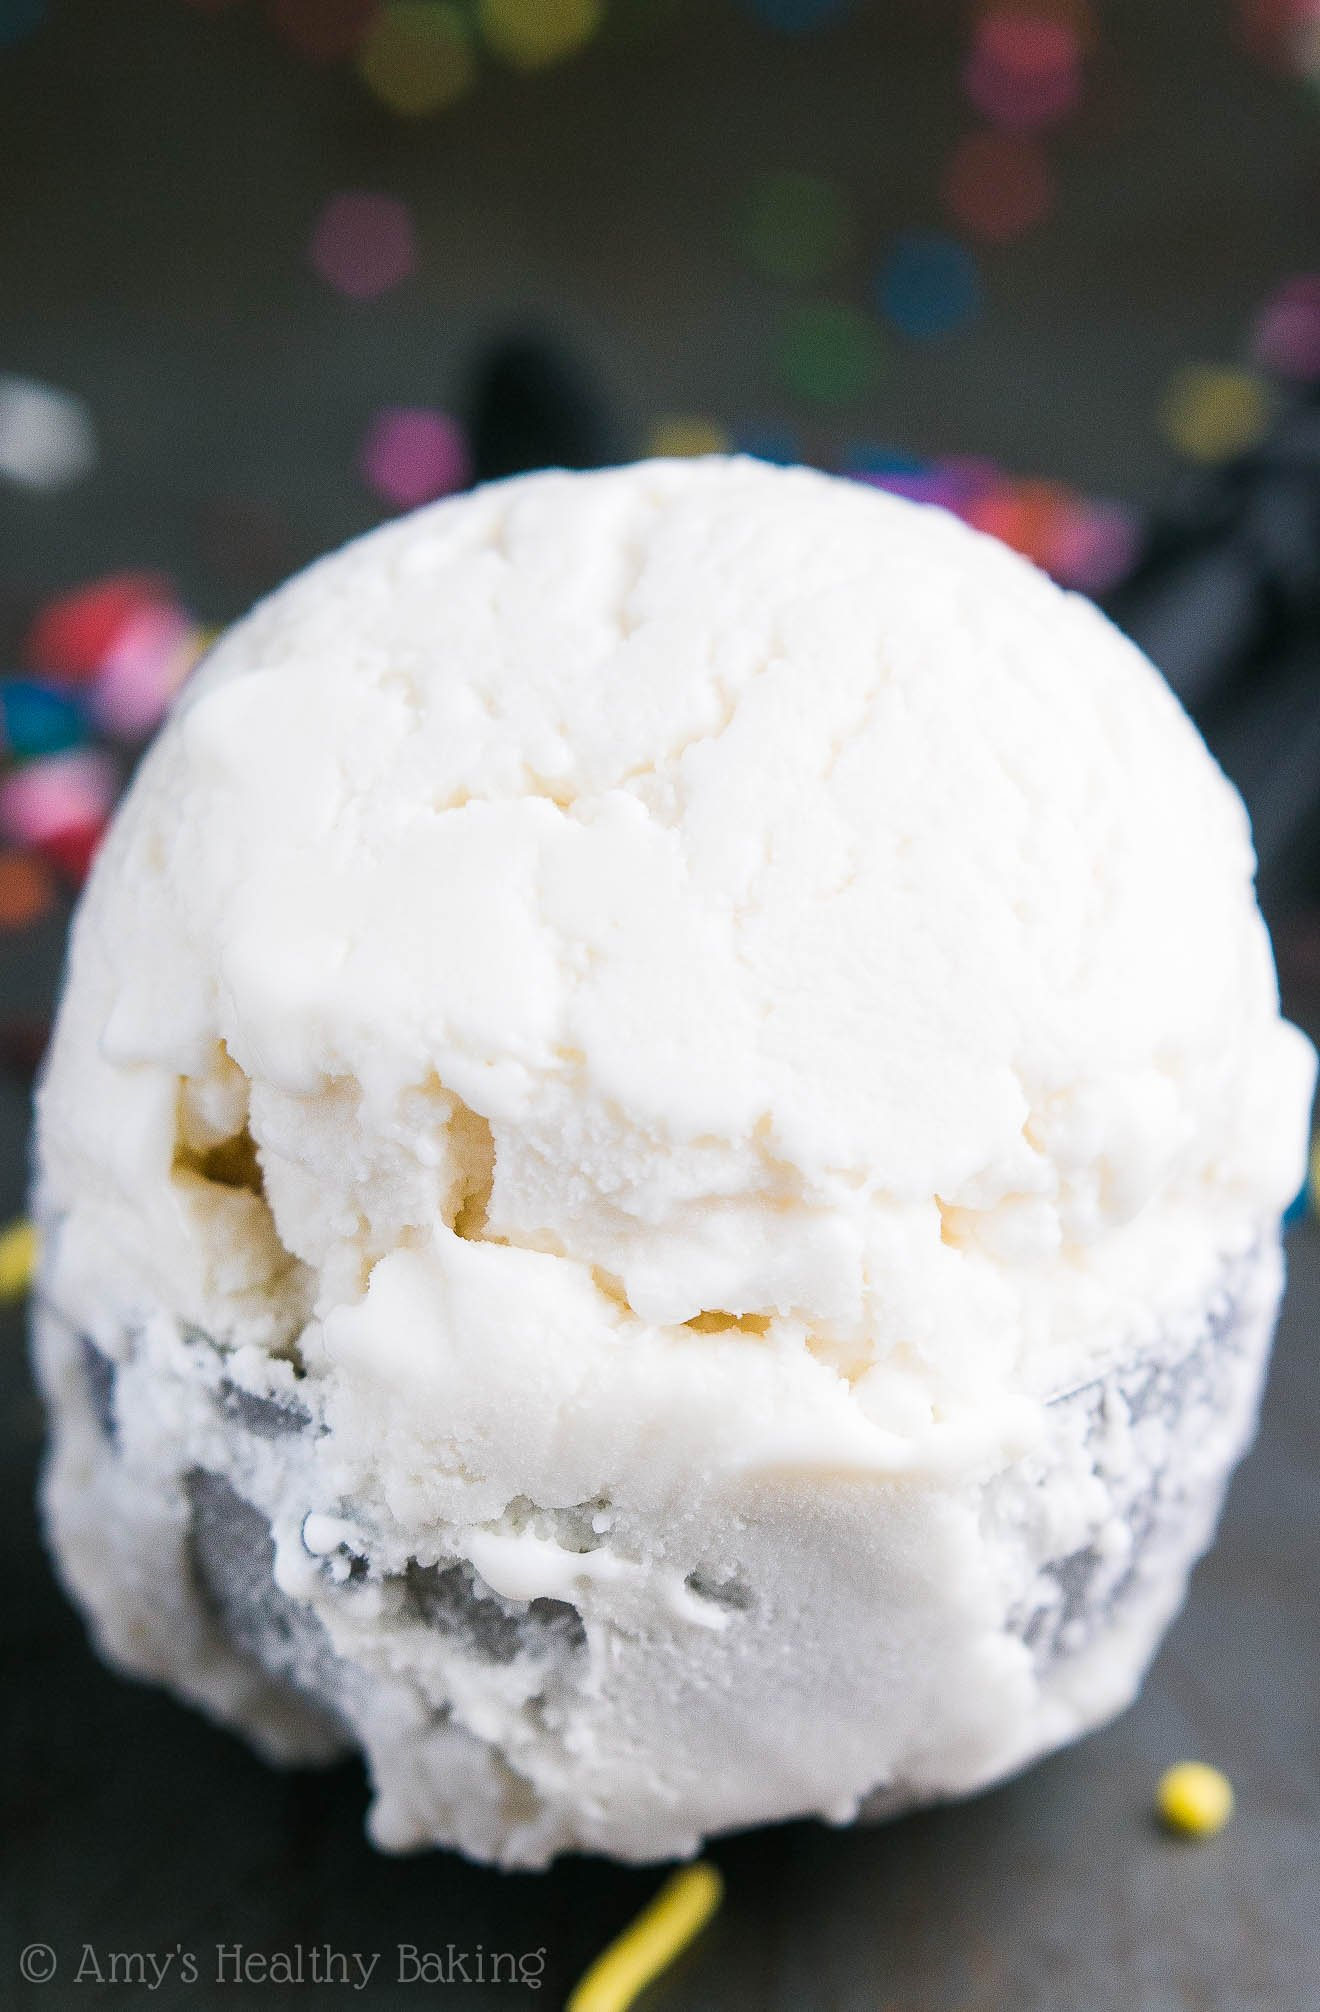 Skinny Vanilla Ice Cream -- just 78 calories + nearly 8g of protein! It tastes exactly like what you'd get at an ice cream parlor, not healthy at all!